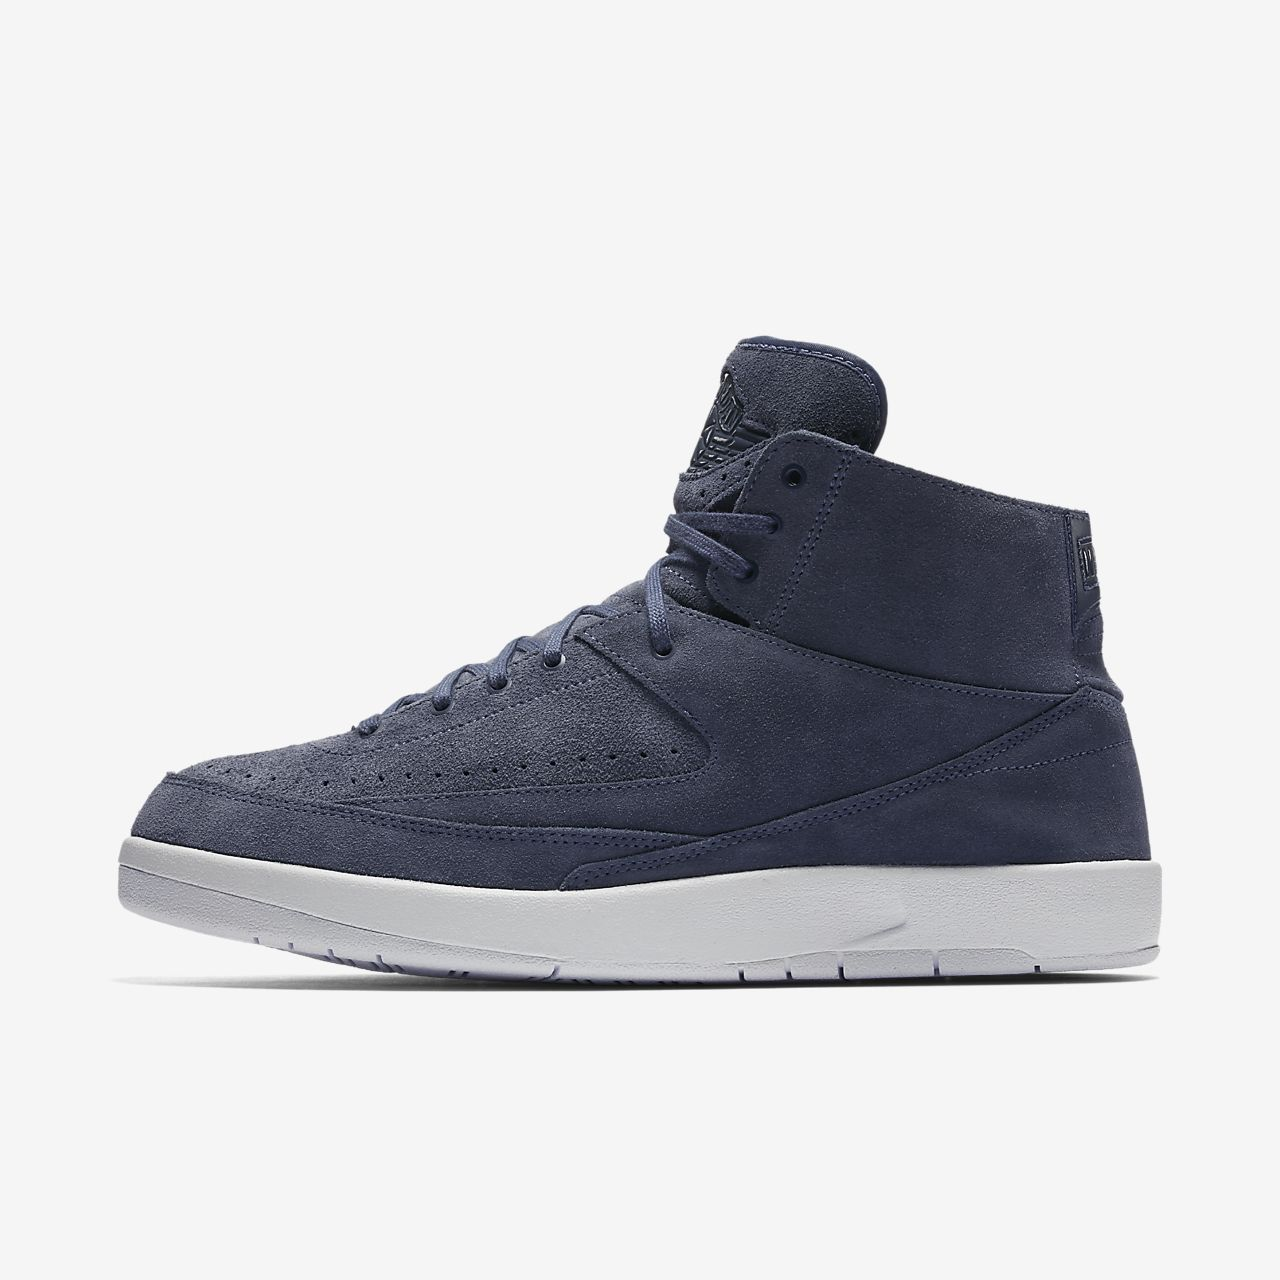 the latest 10b42 0006b Men s Shoe. Air Jordan 2 Retro Decon